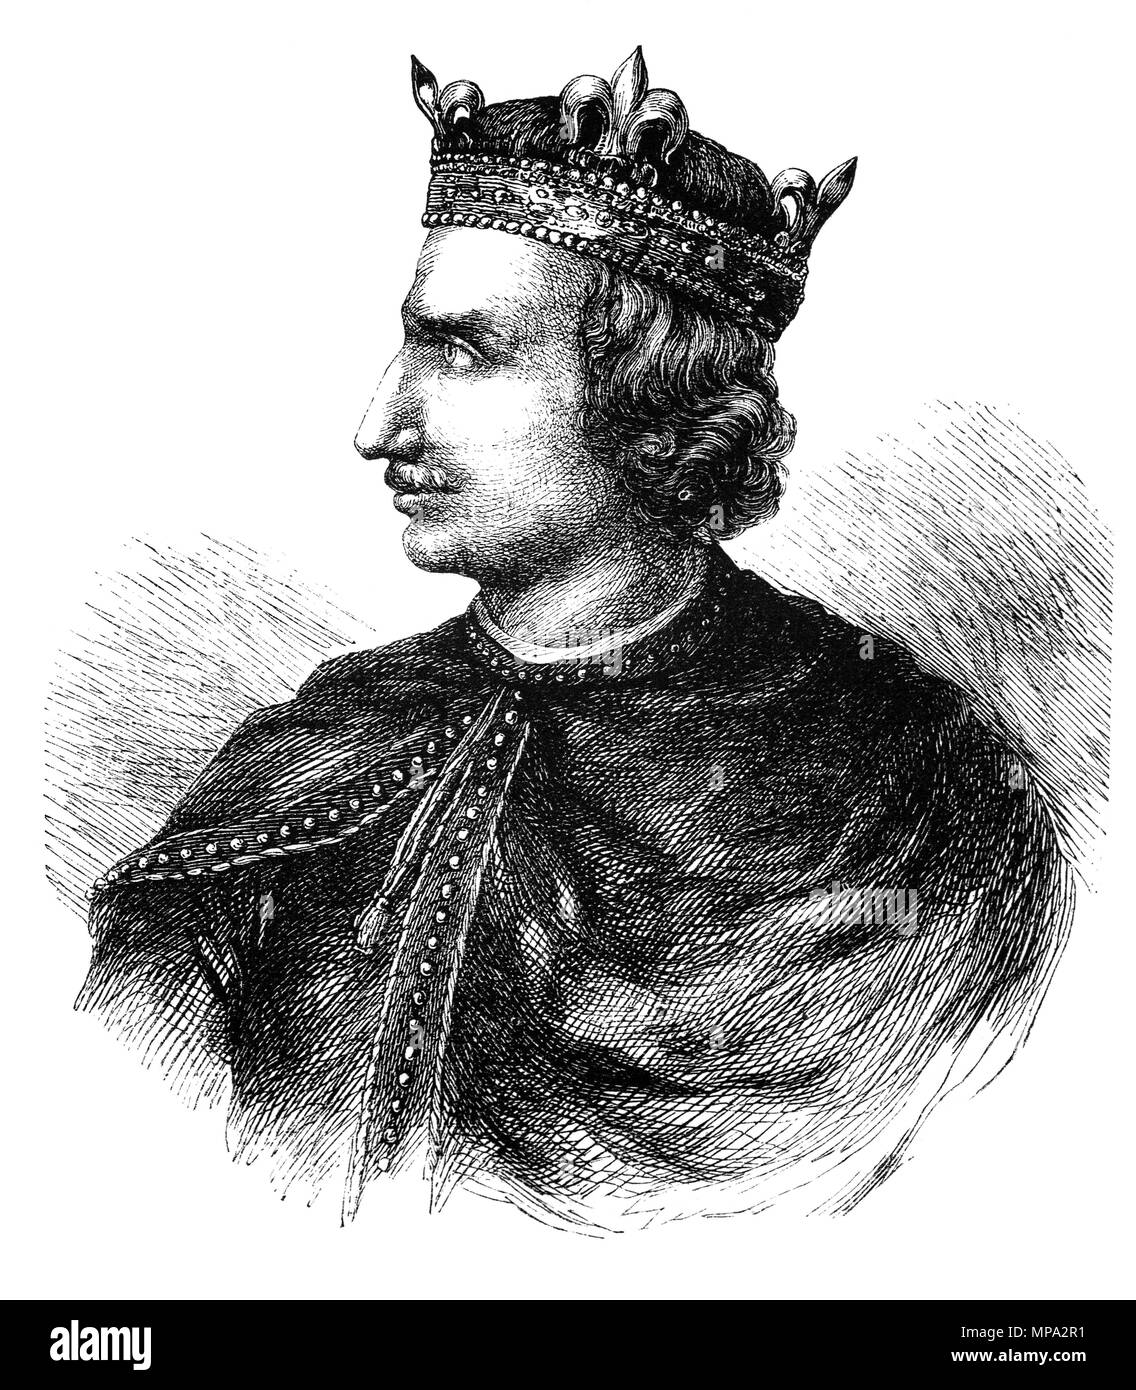 Henry I (1068-1135), was King of England from 1100 to his death. He was the fourth son of William the Conqueror and on William's death in 1087, Henry's elder brothers Robert Curthose and William Rufus inherited Normandy and England, respectively, but Henry was left landless. Henry gradually rebuilt his power base in the Cotentin and allied himself with William against Robert. Henry was present when William died in a hunting accident in 1100, and he seized the English throne, promising at his coronation to correct many of William's less popular policies. - Stock Image